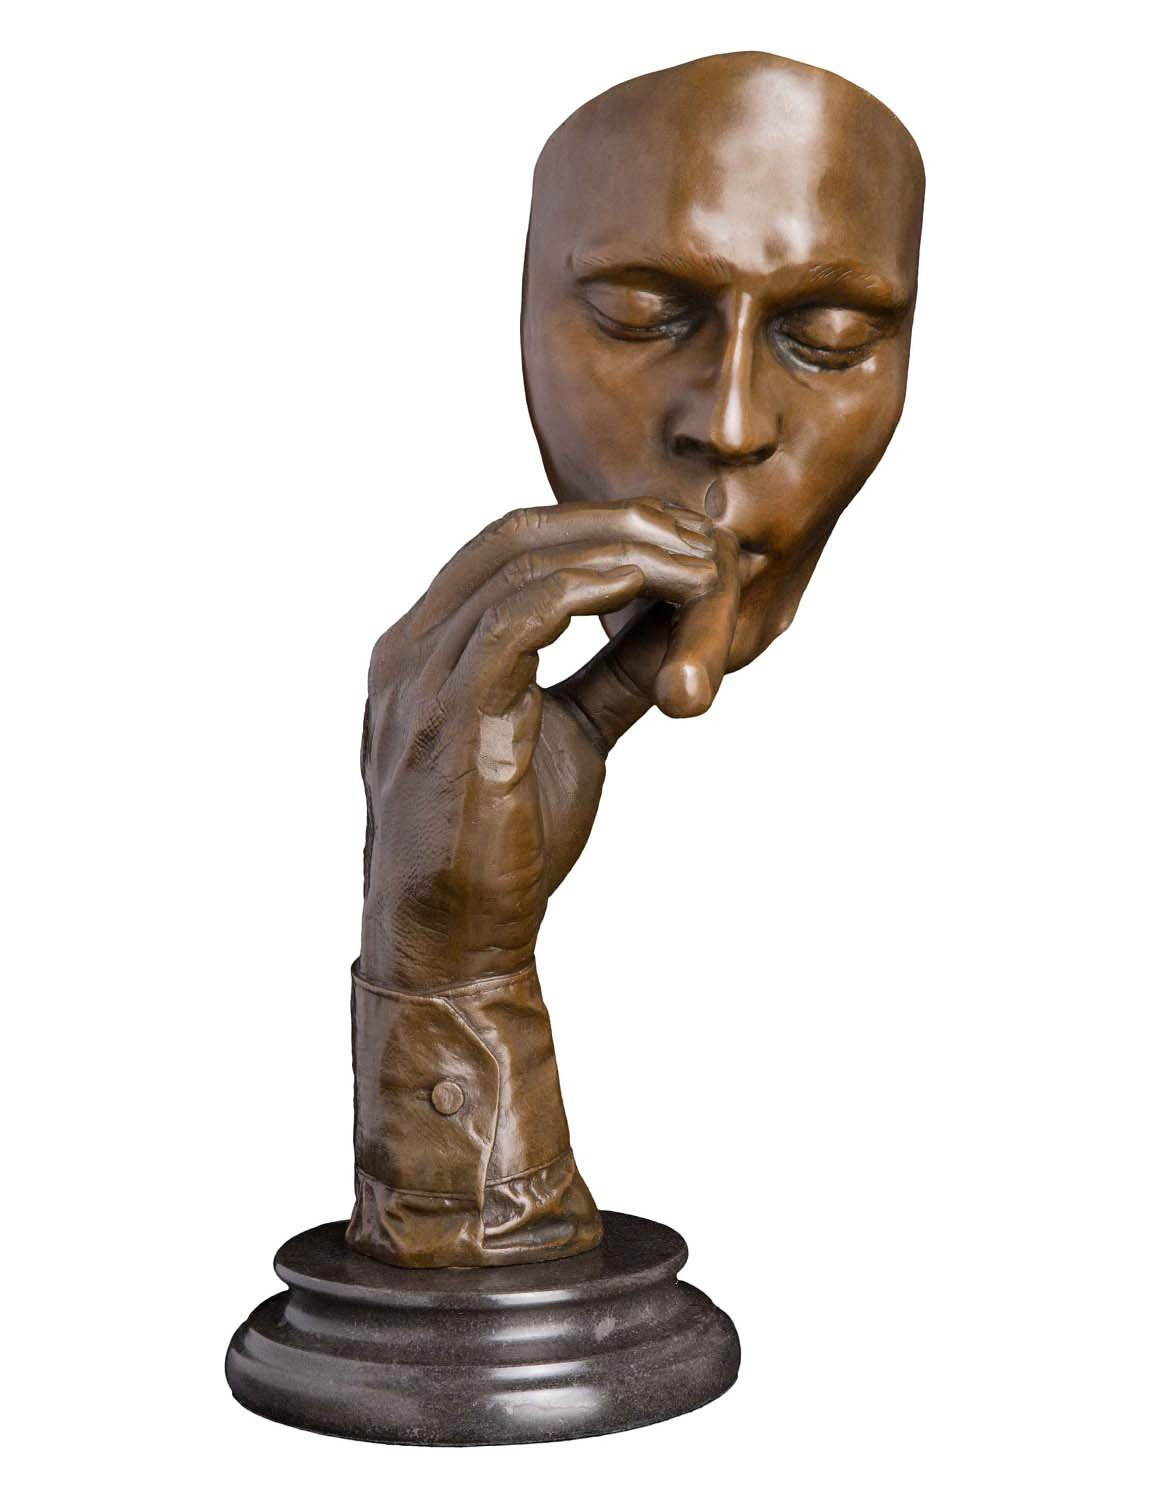 Artylife Lost Wax European Bronze Sculpture Smoking Man Cigar Marble Base Figurine by Dali Bronze Statue Home Decor Collectible Gift by Artylife (Image #4)